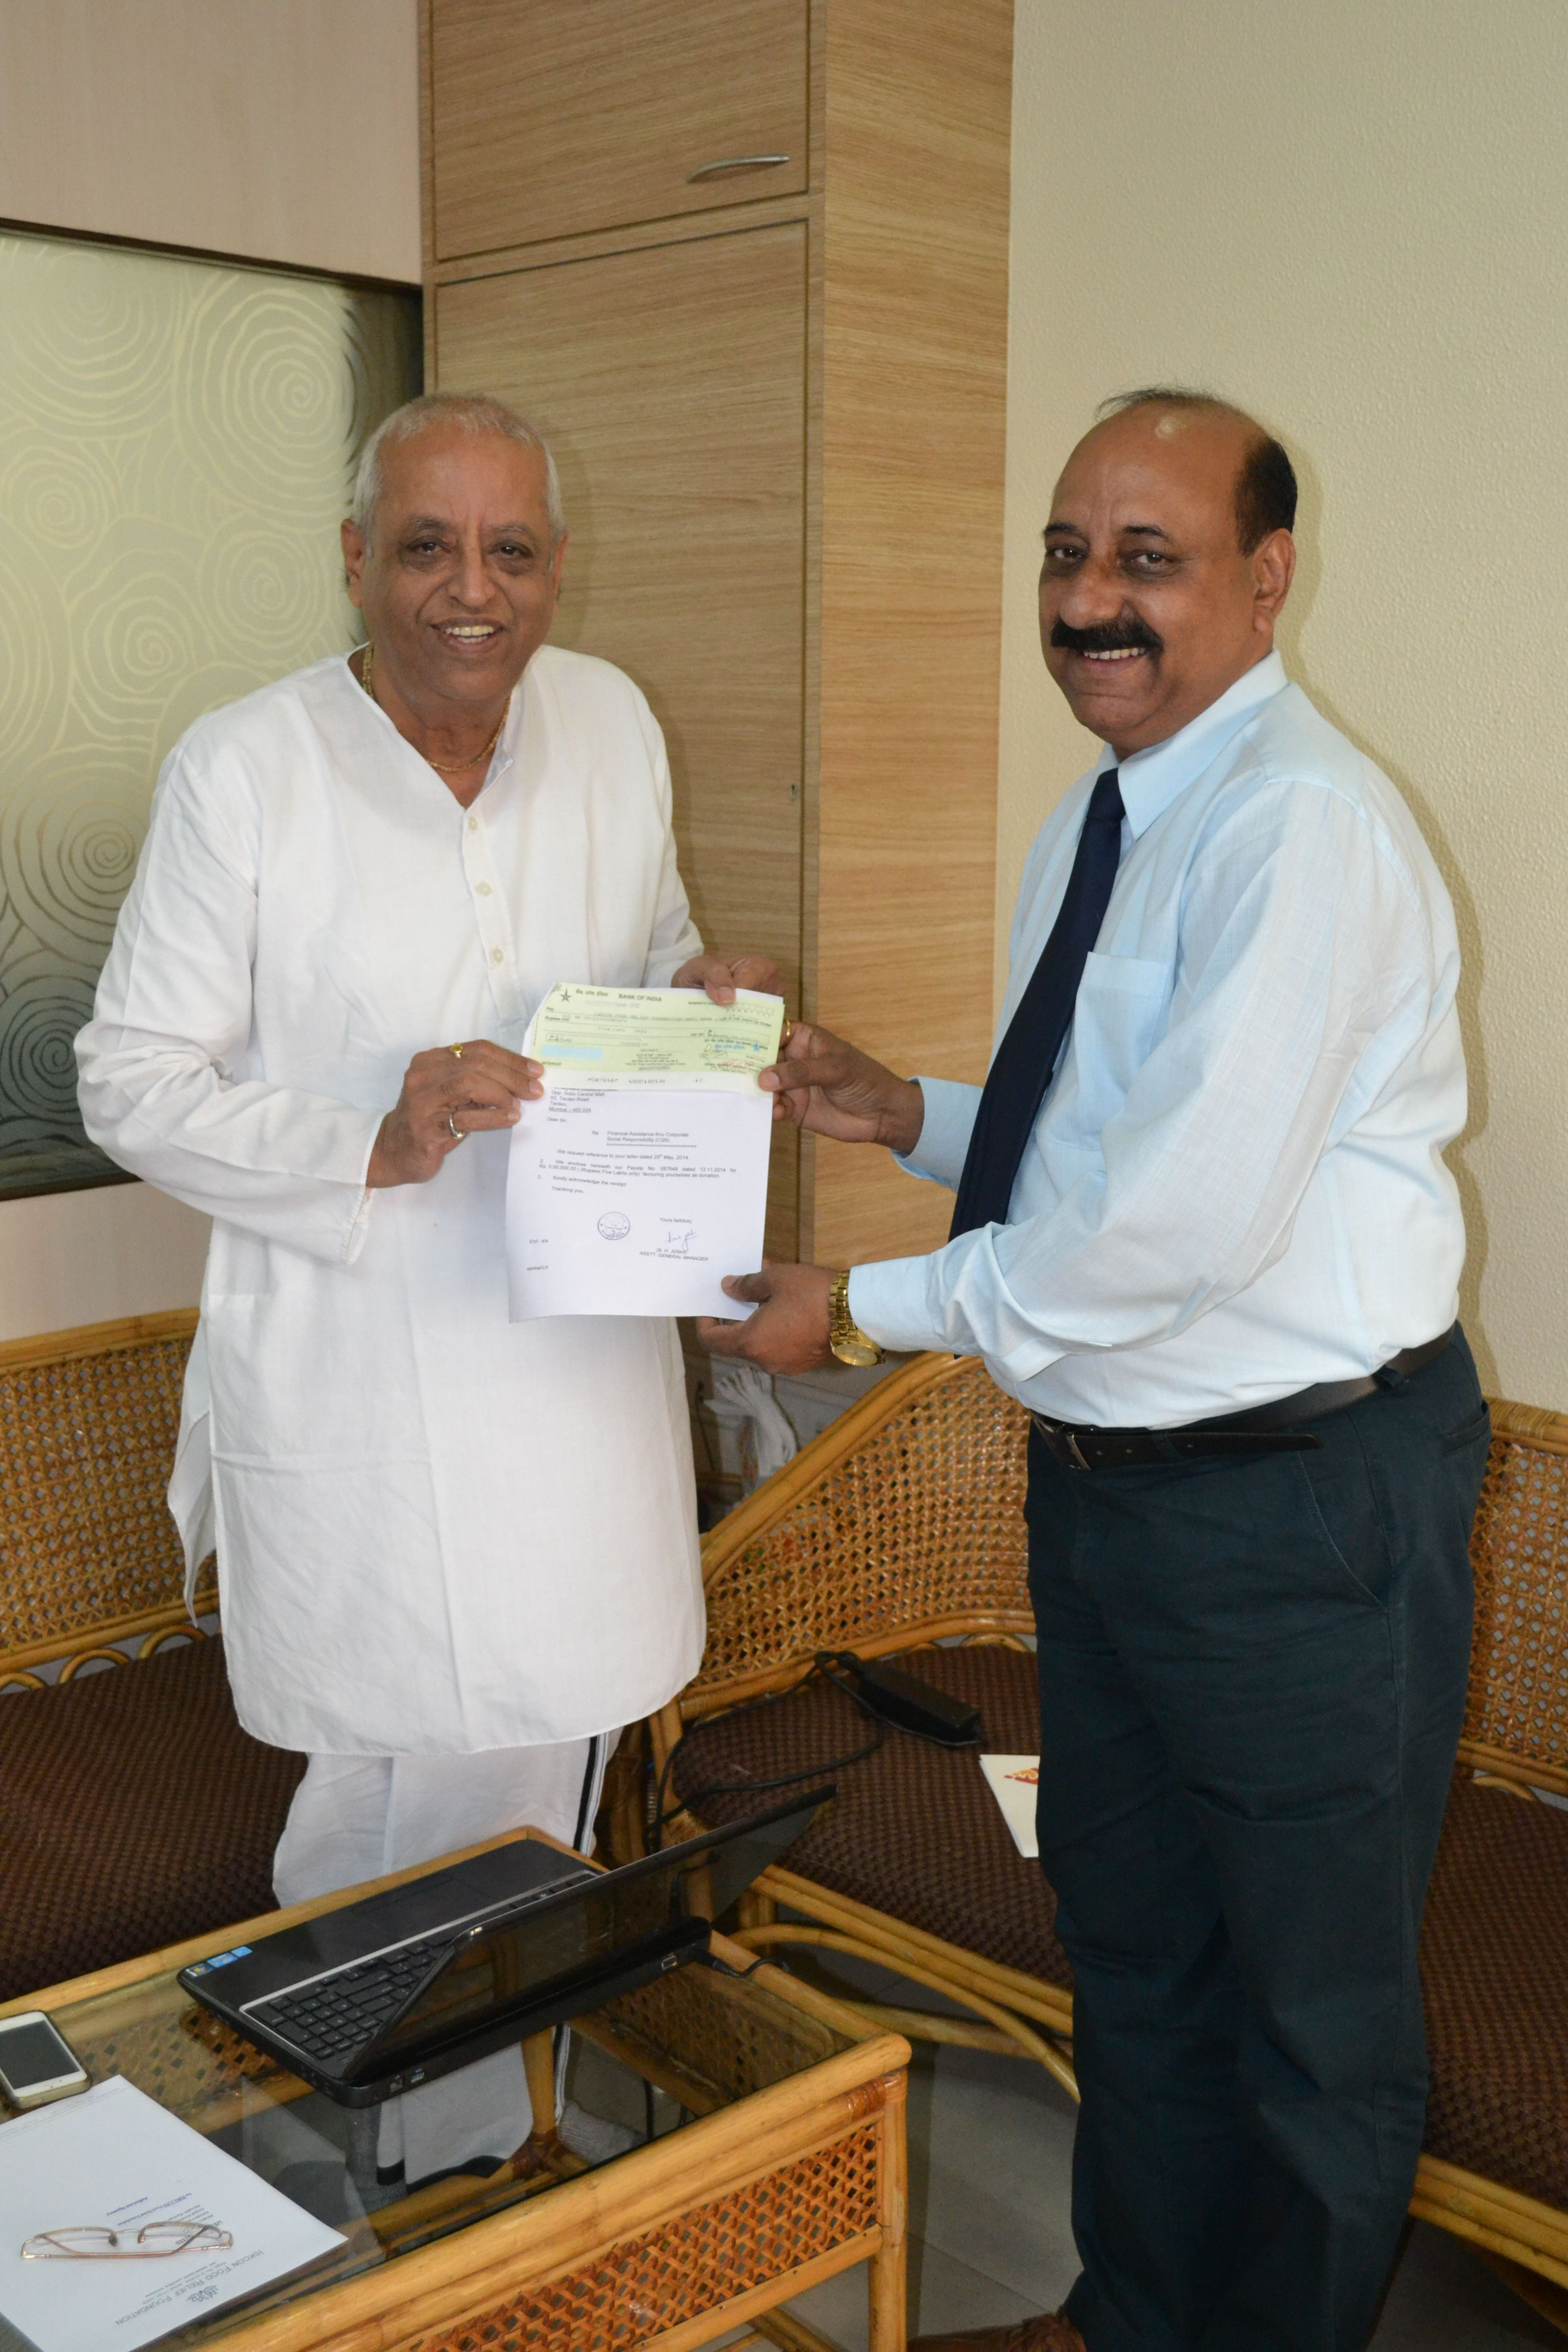 Mr Satish Joshi - AGM of BankofIndia personally came to show his support for the Annamrita project.....